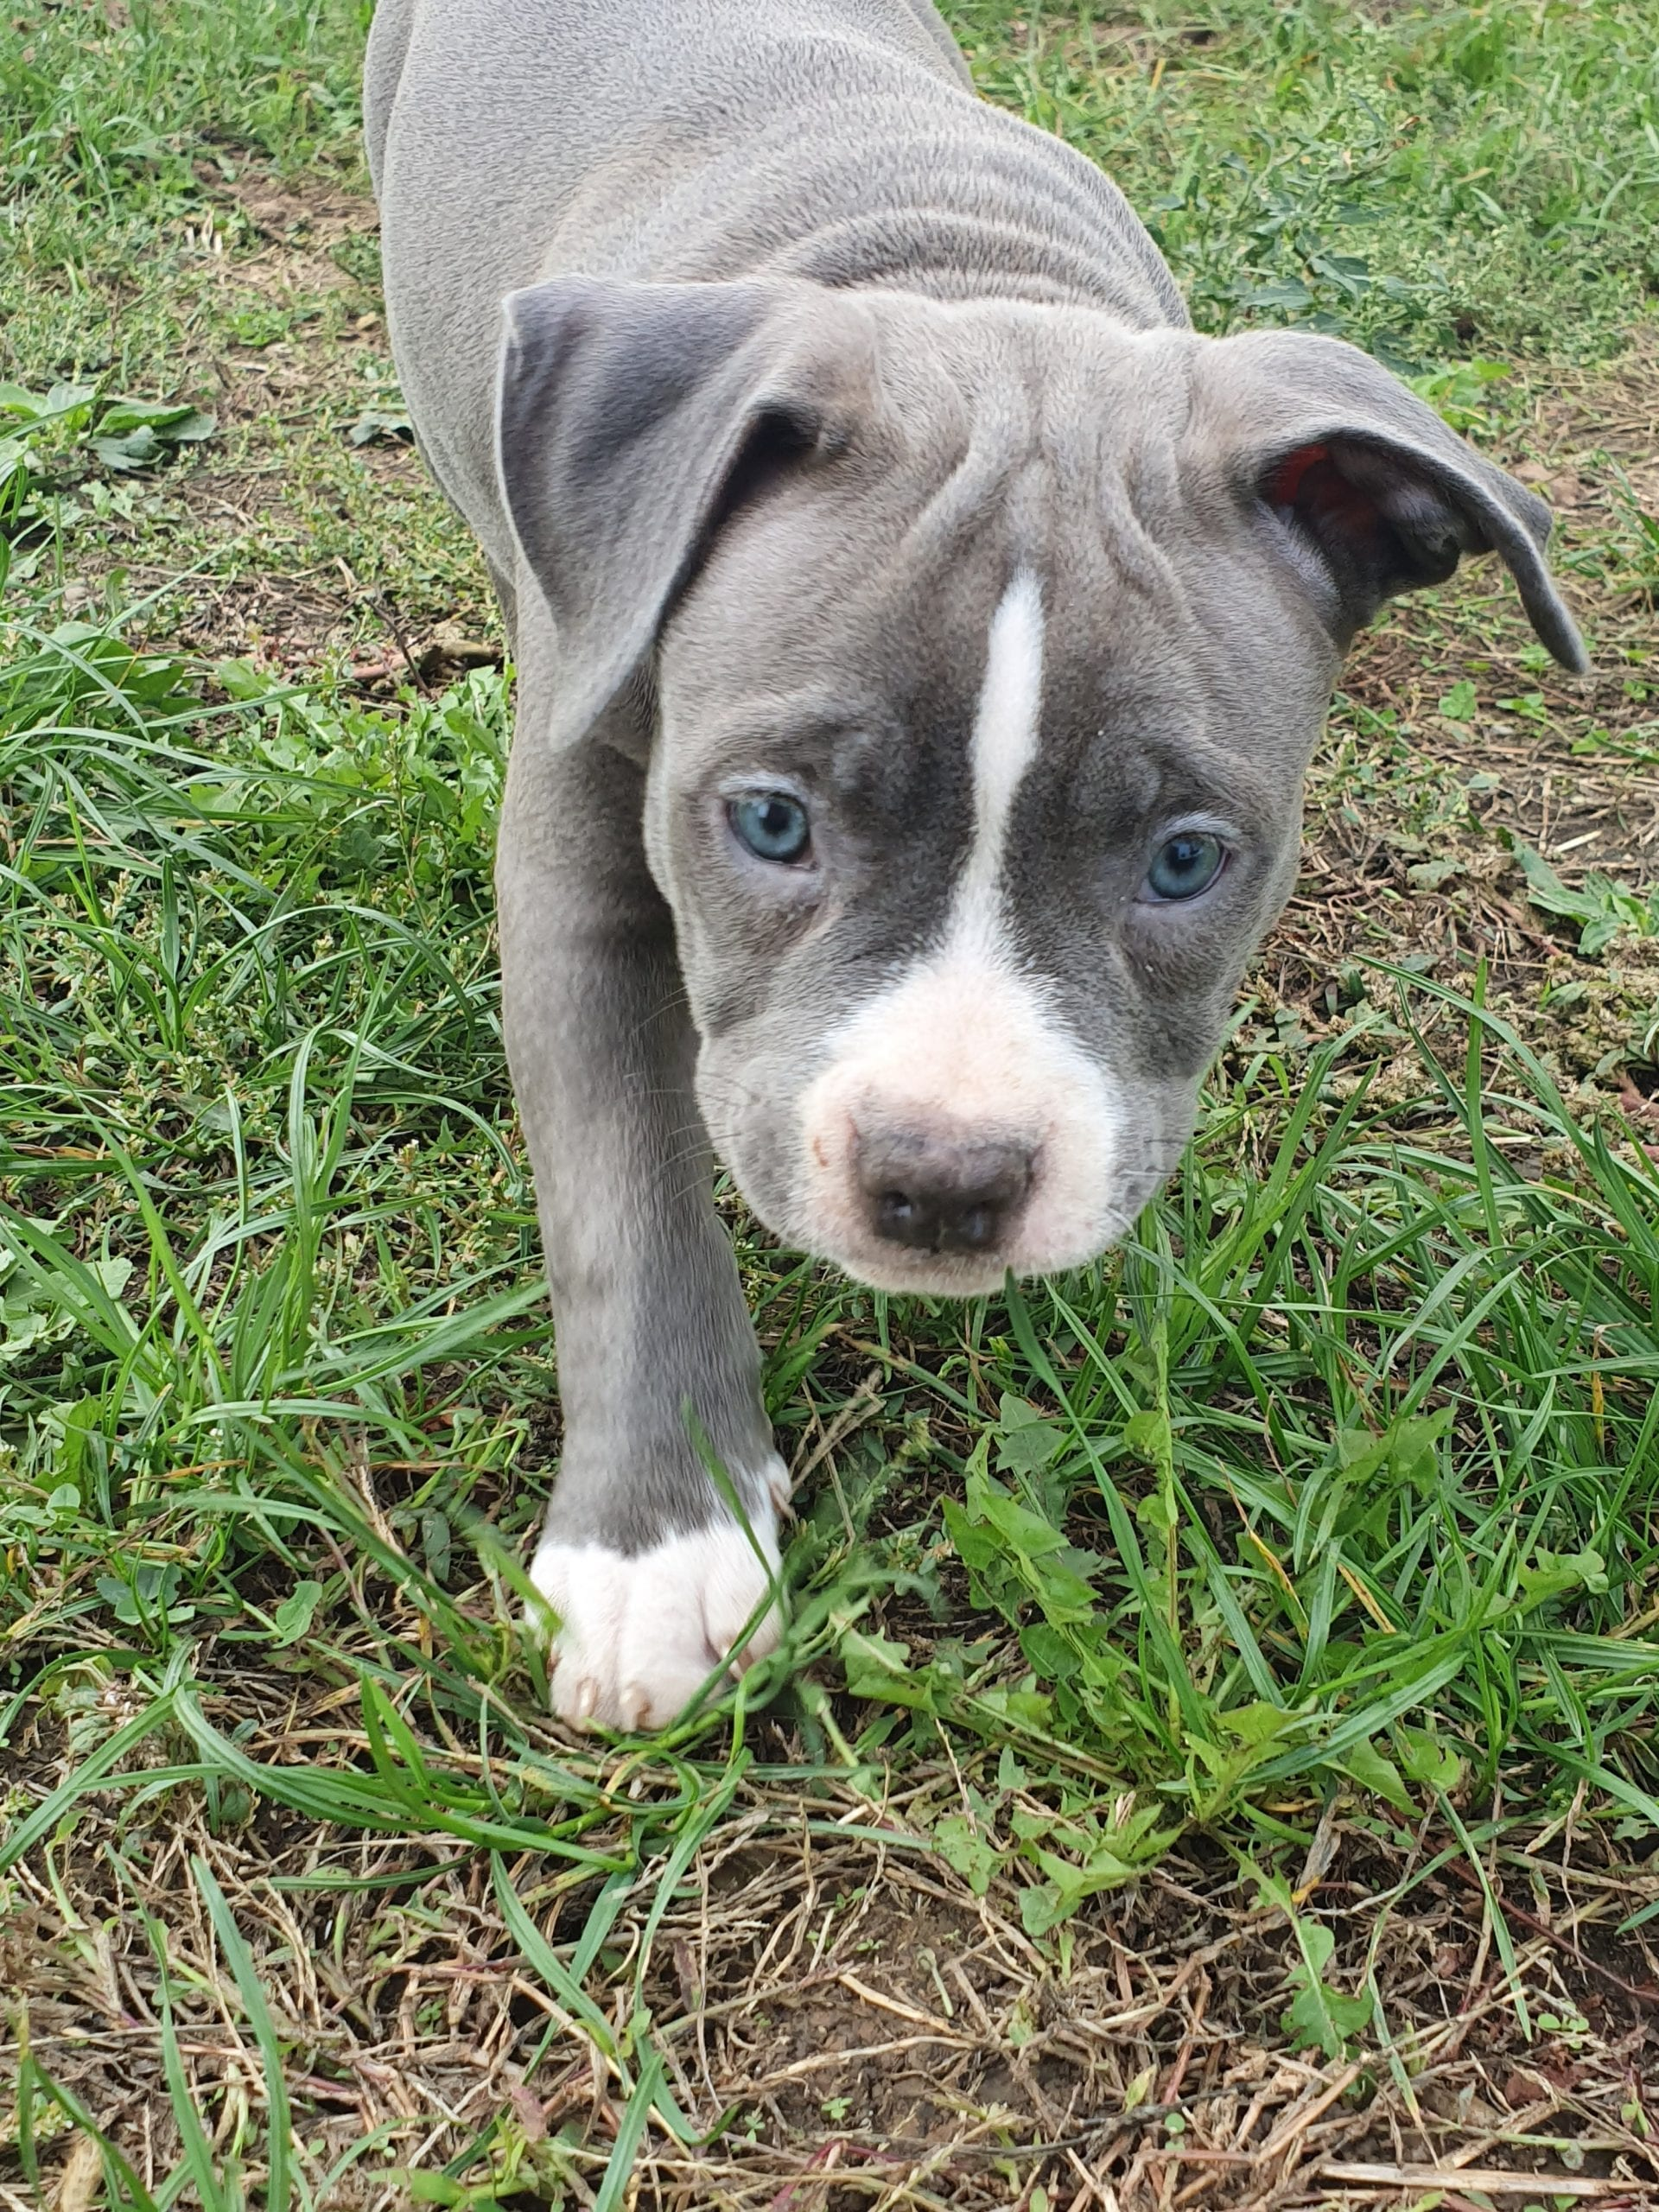 American Bully Puppies for Sale - Sell American Bully Puppy